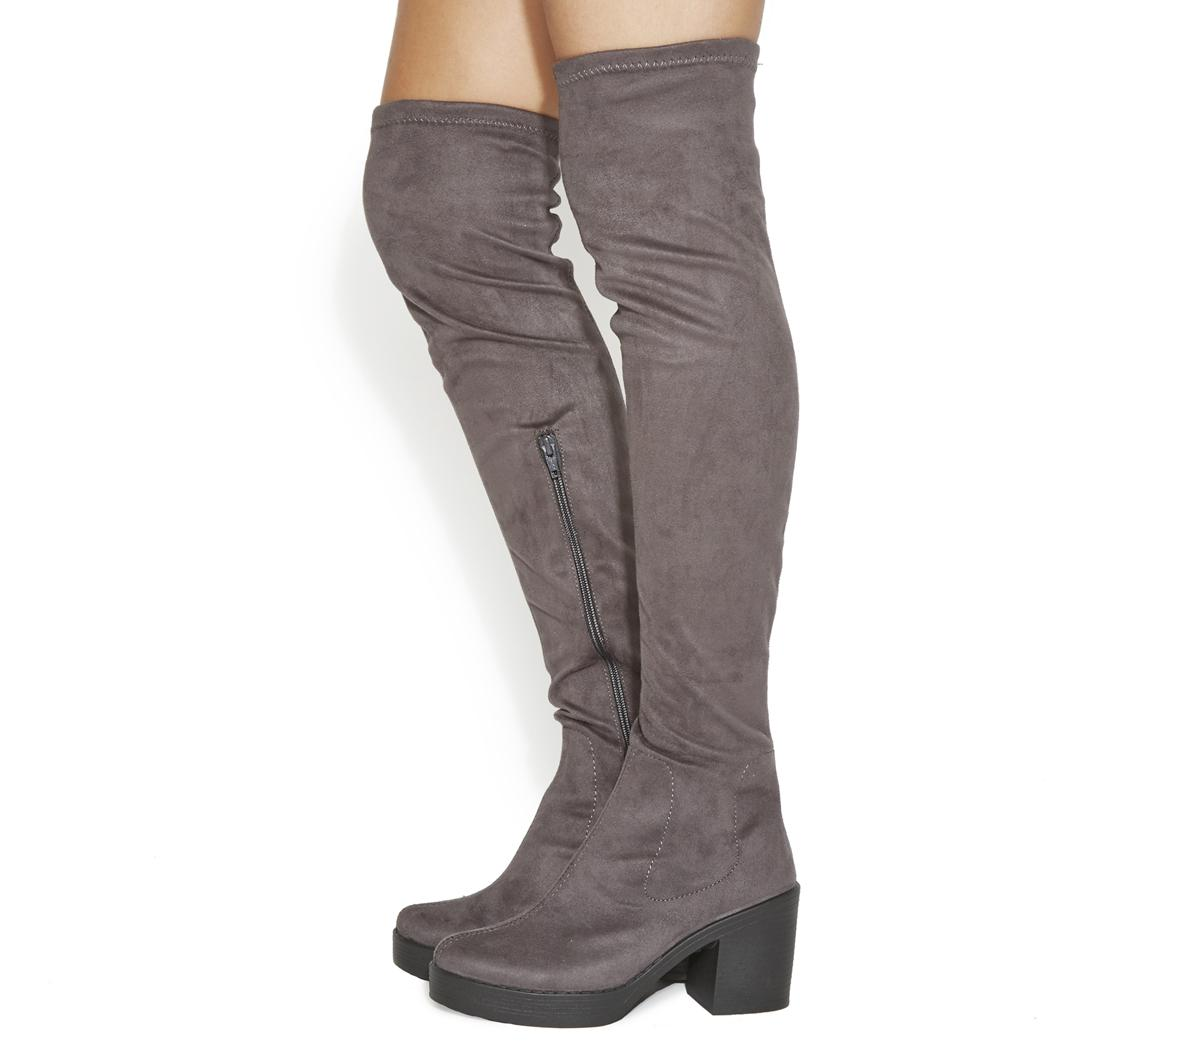 Khloe Stretch Over The Knee Boots